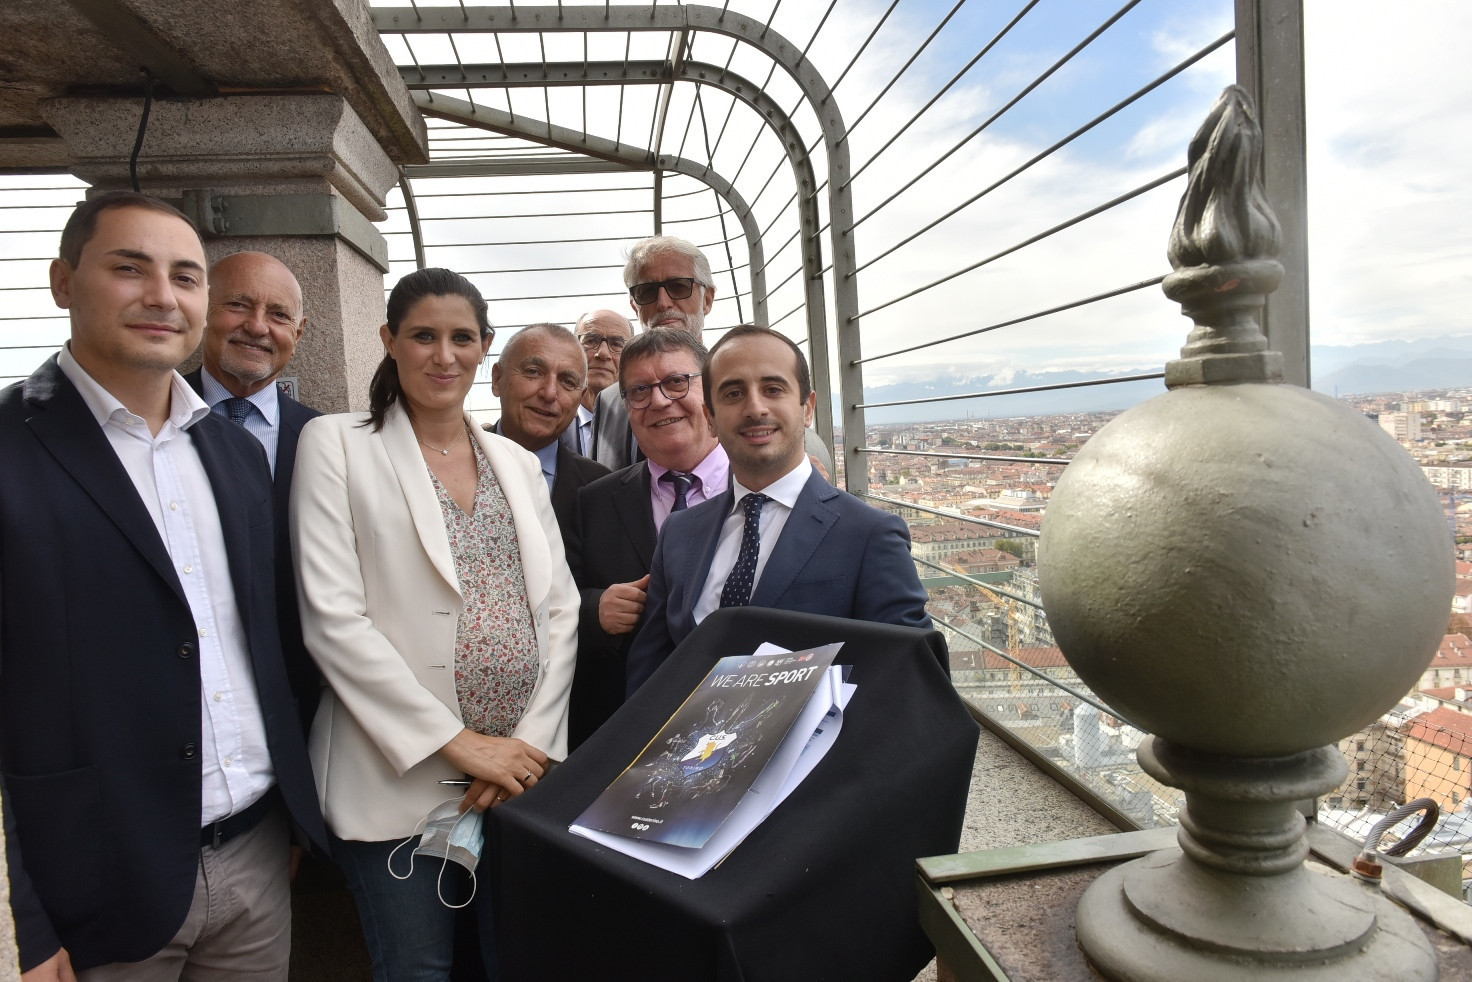 Contracts signed for Turin to host 2025 World Winter University Games